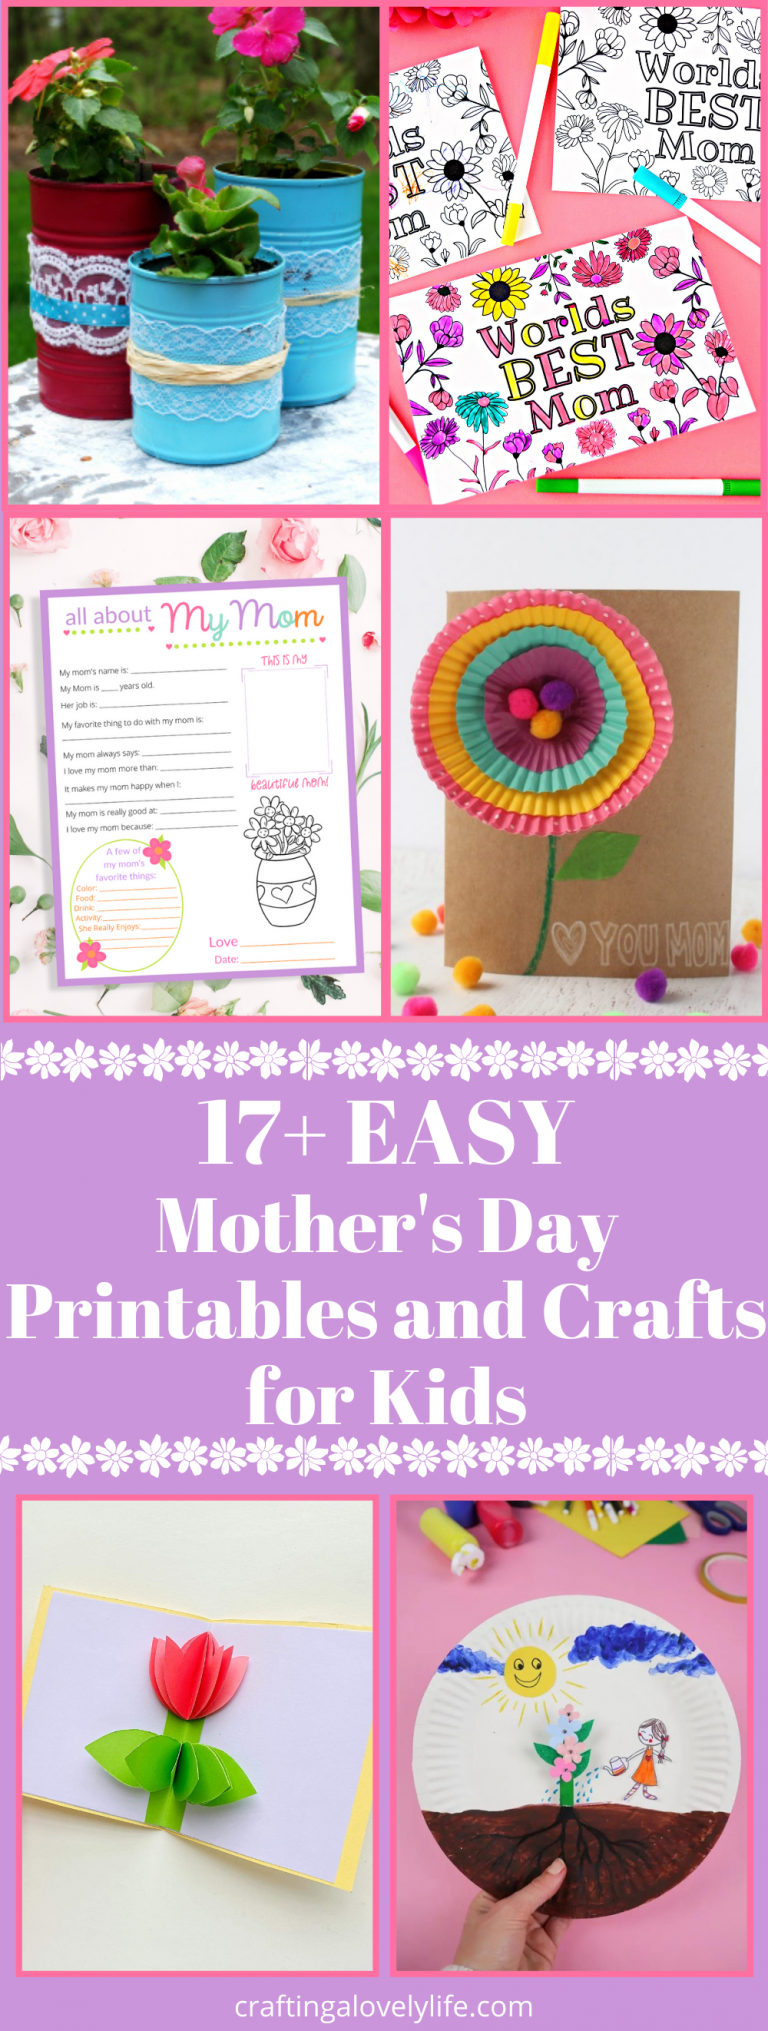 Free Mother's Day Printables and Crafts